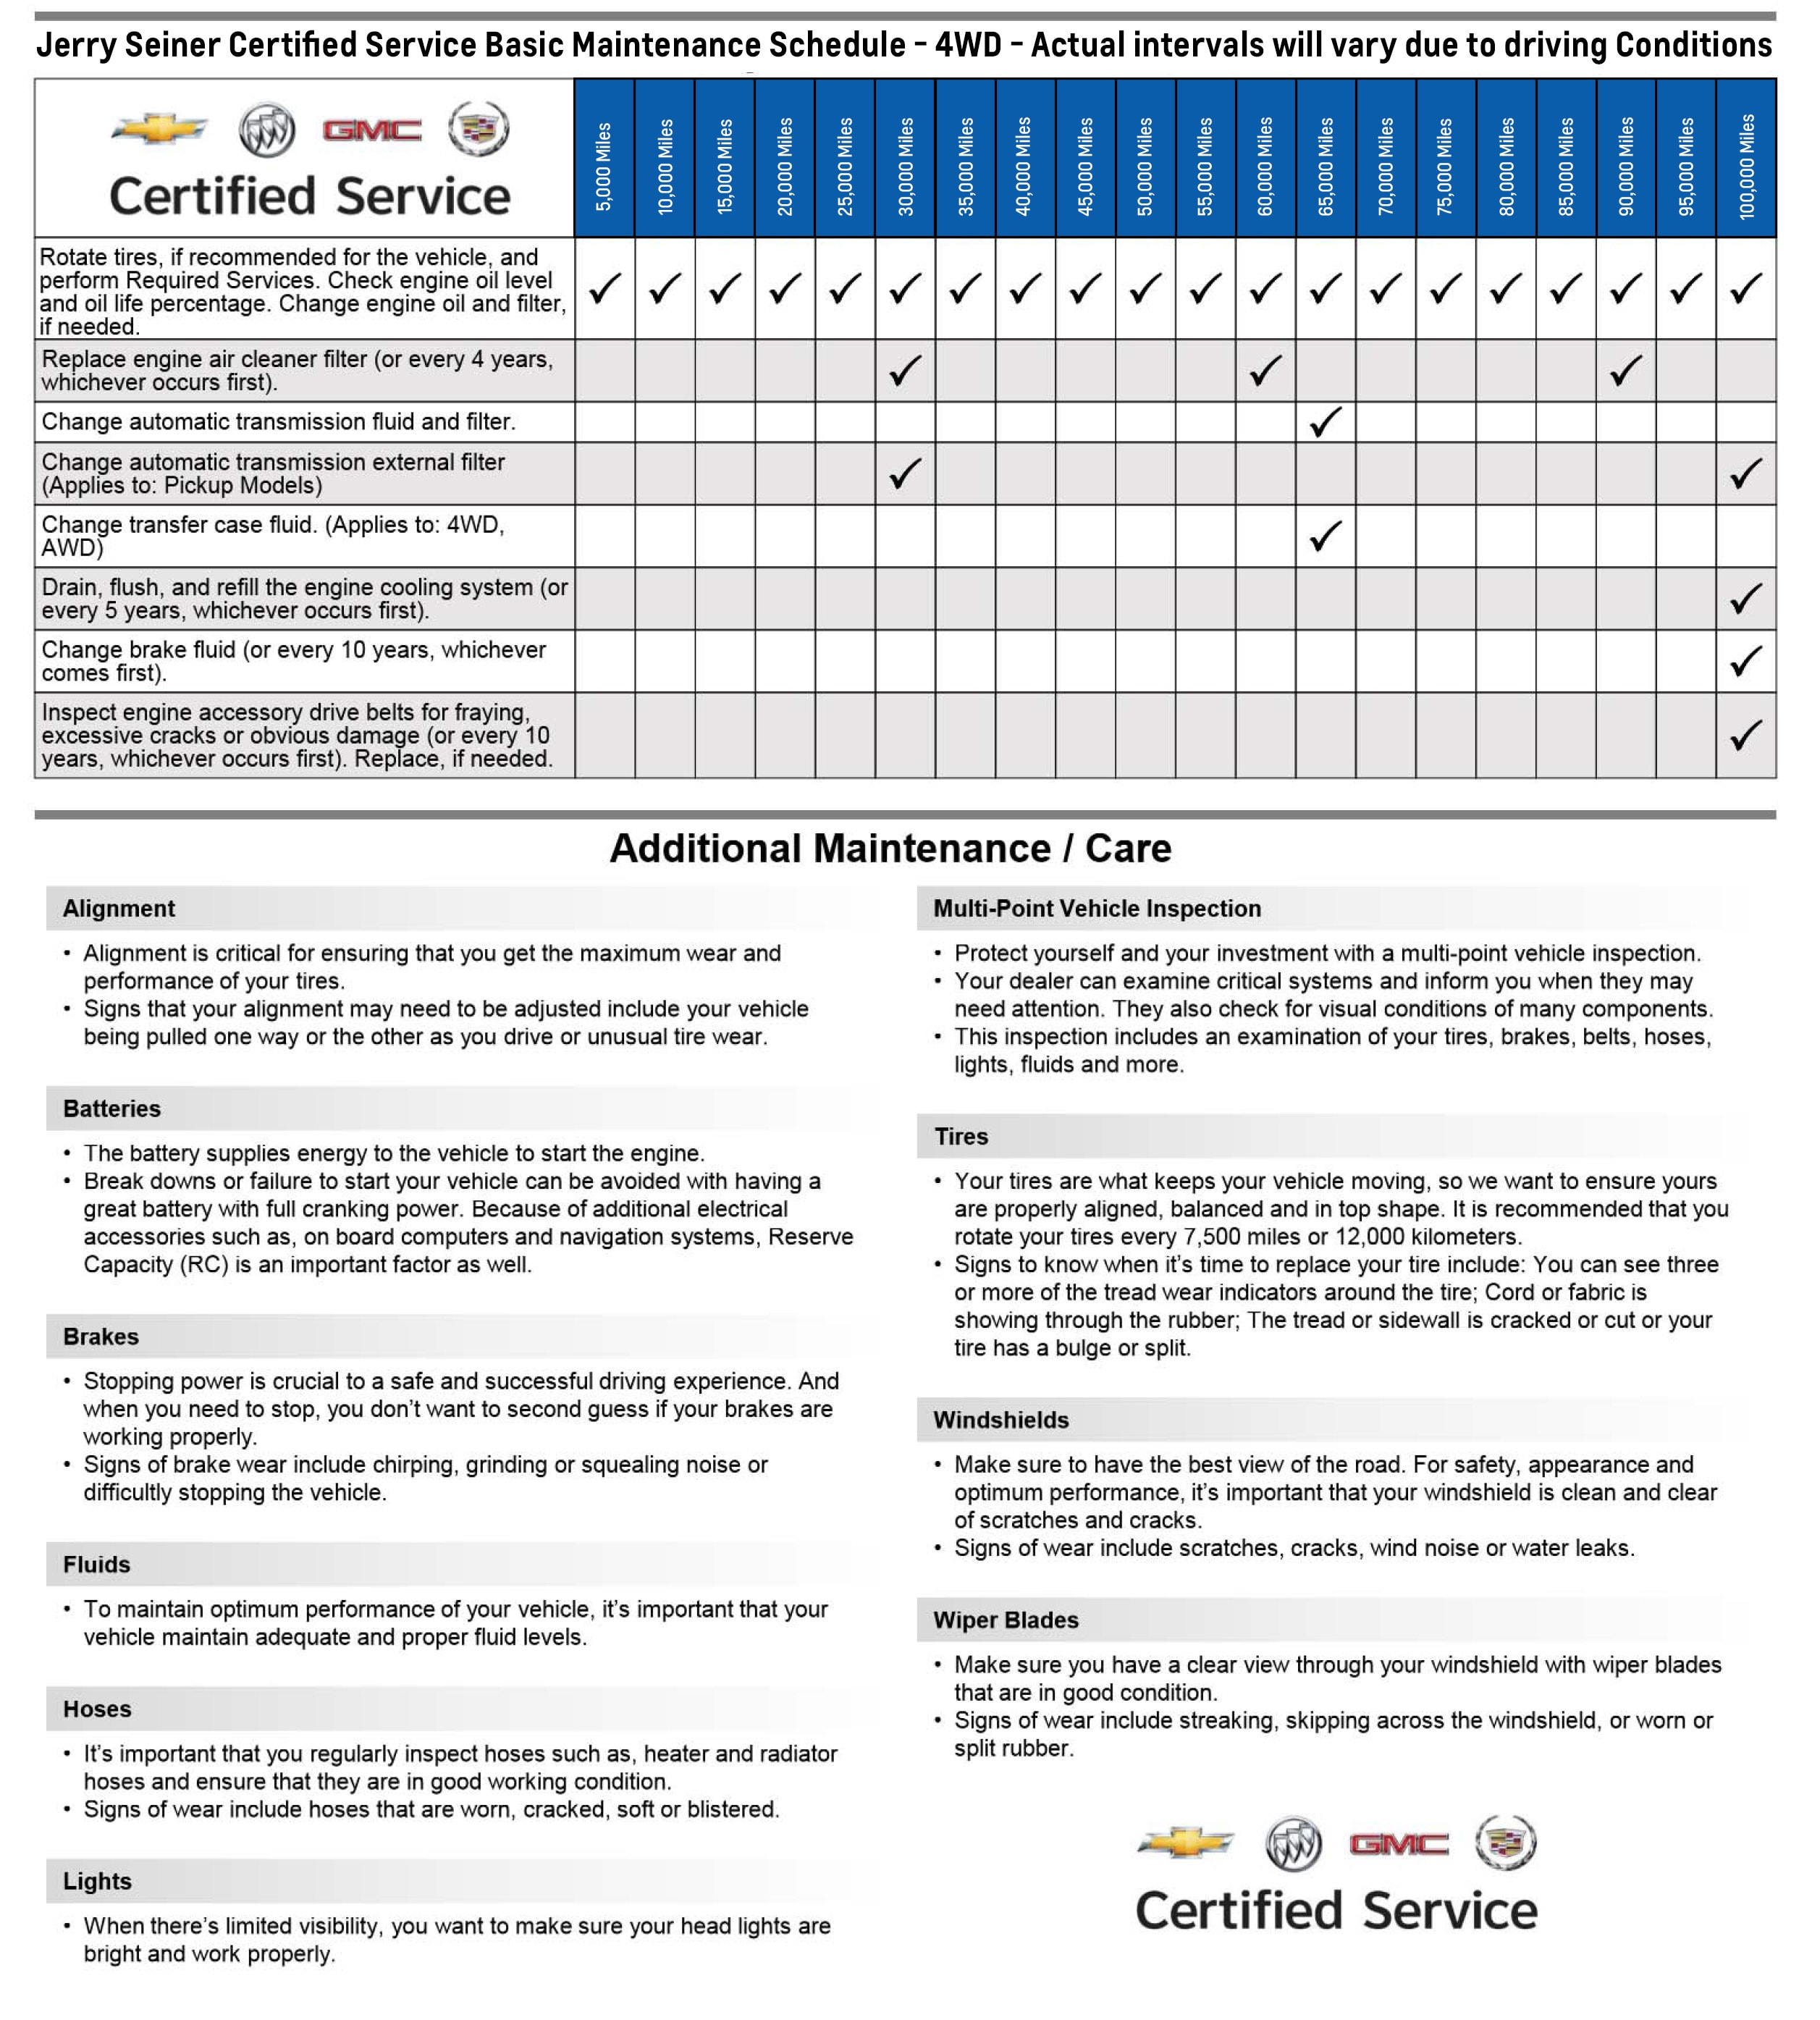 4WD Maintenance Schedule | Jerry Seiner Chevrolet | Serving West ...